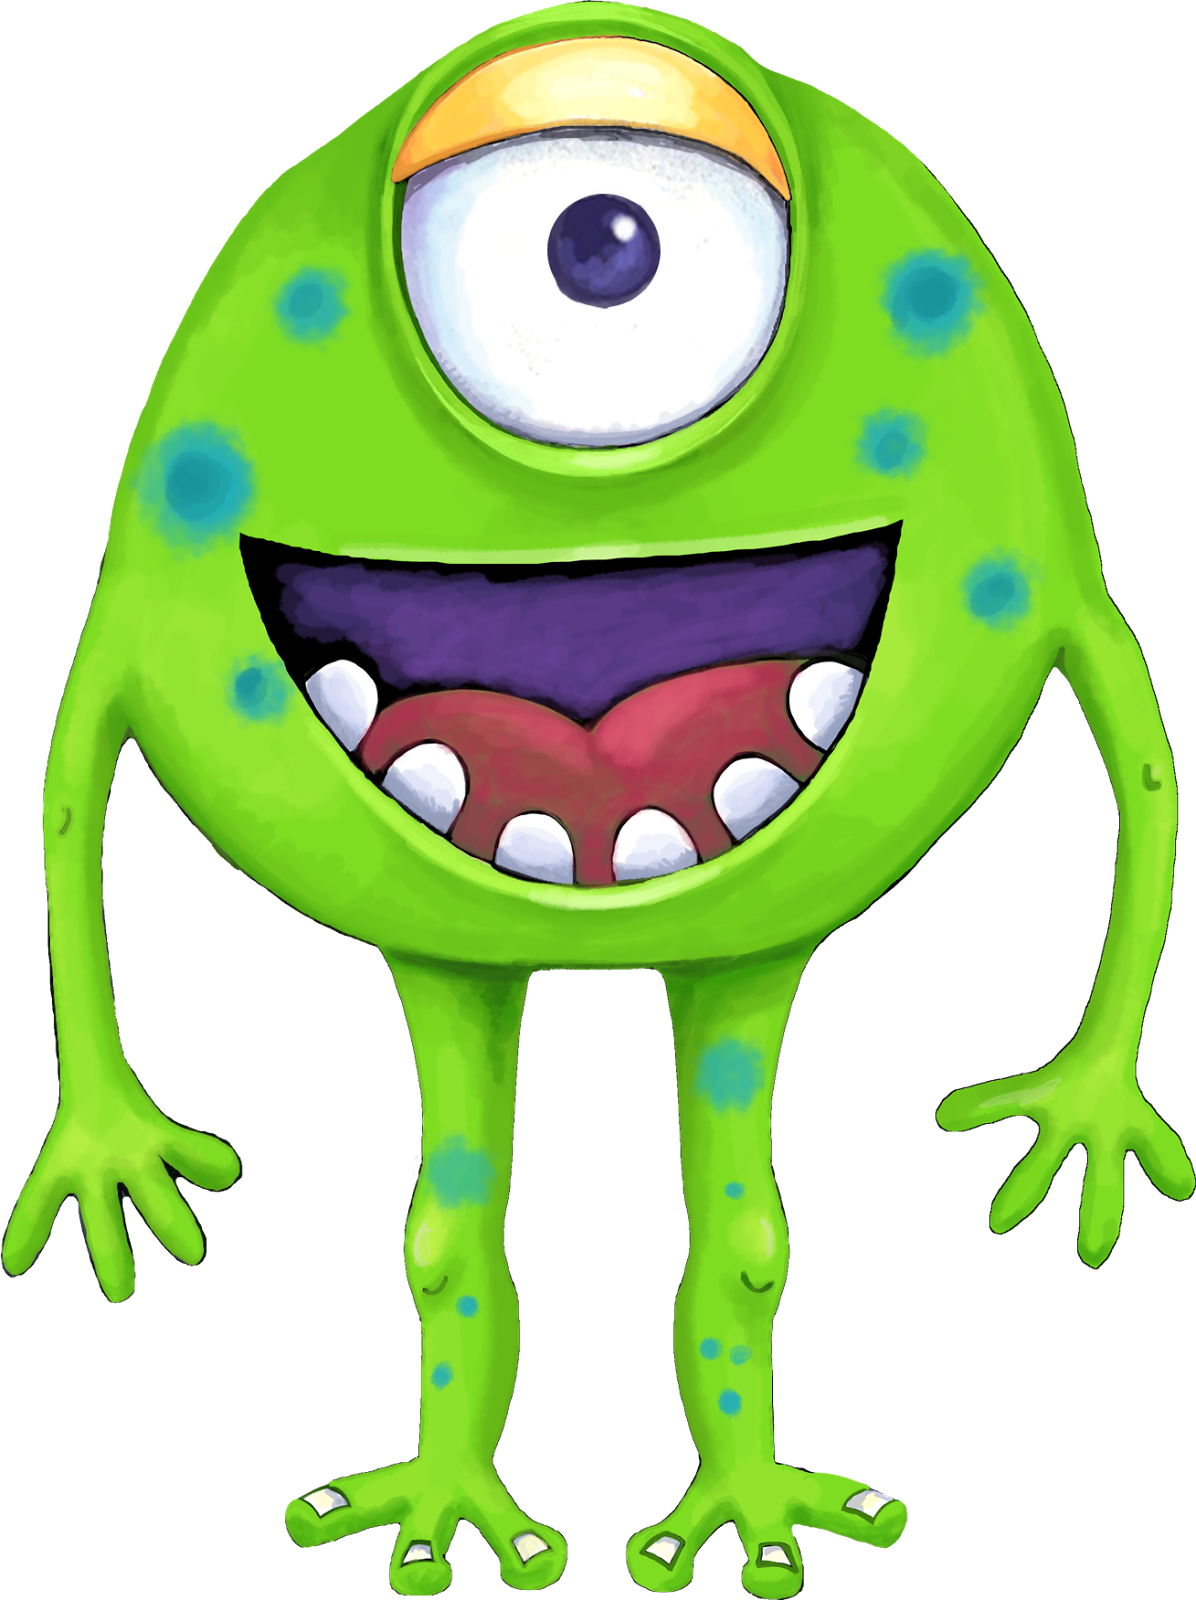 Marvelous ideas pictures cartoon. Pet clipart alien